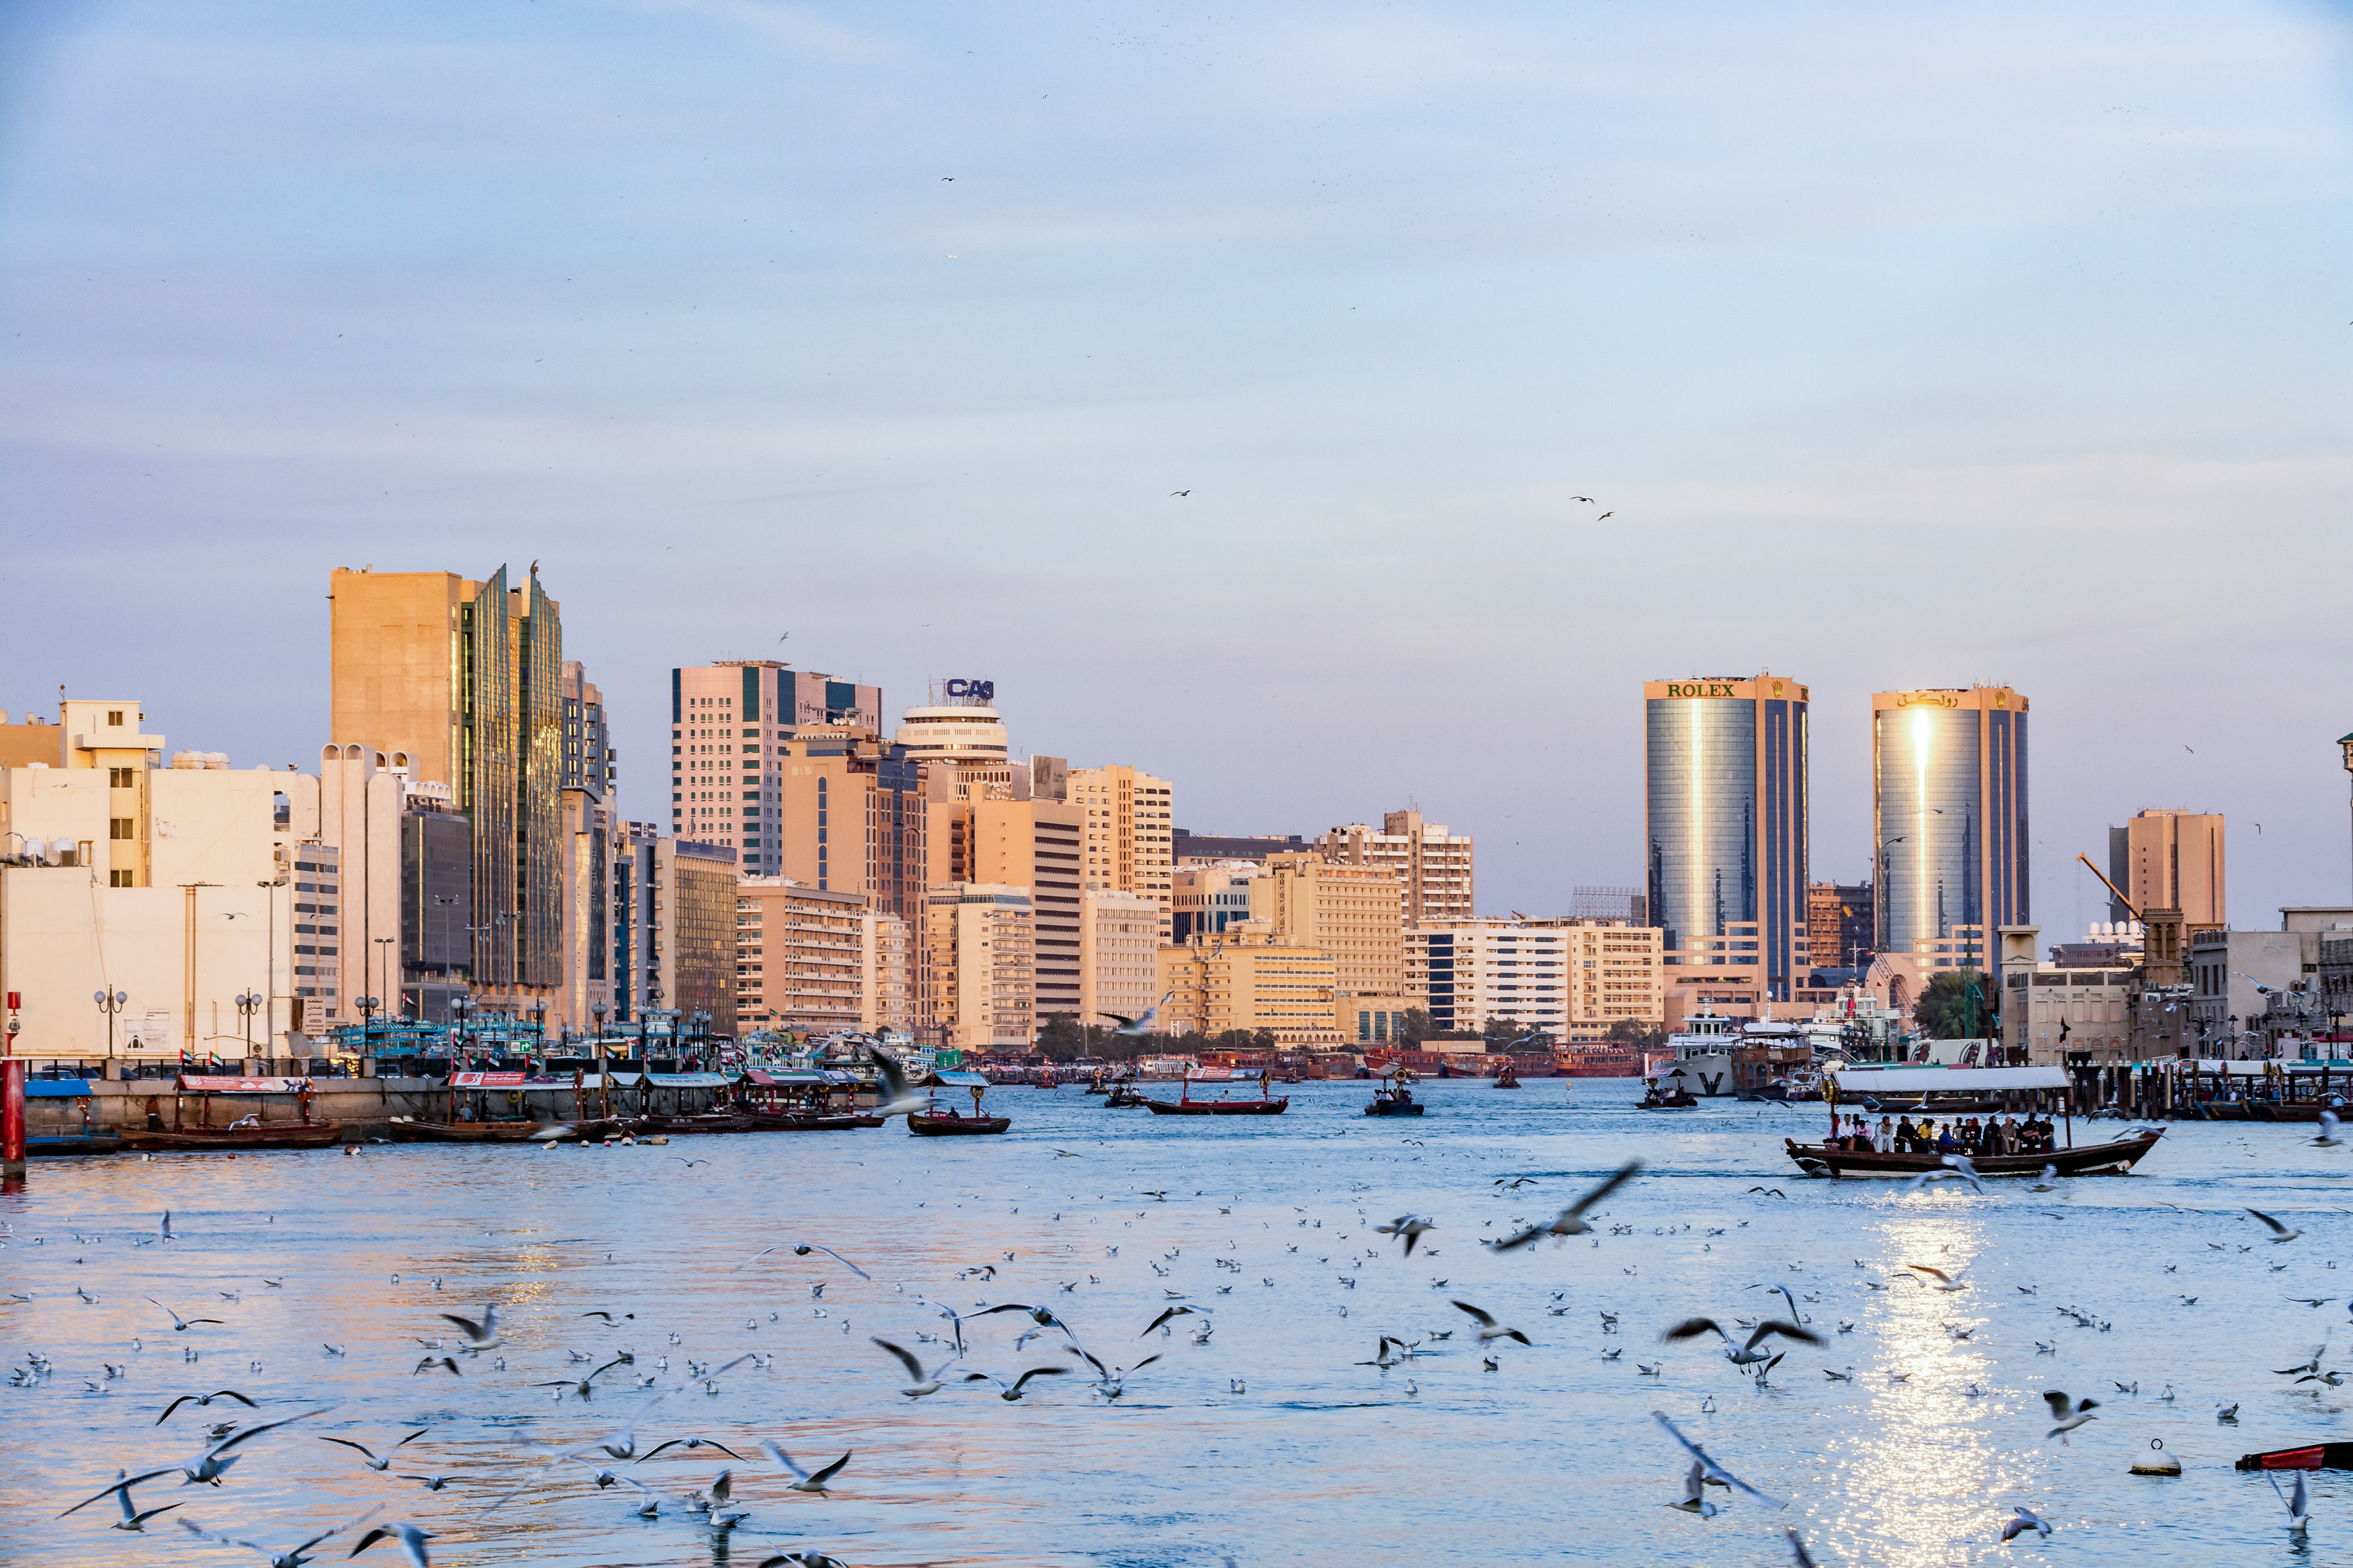 View of Dubai creek with lots of seagulls and abra boats at sunset, United Arab Emirates, UAE